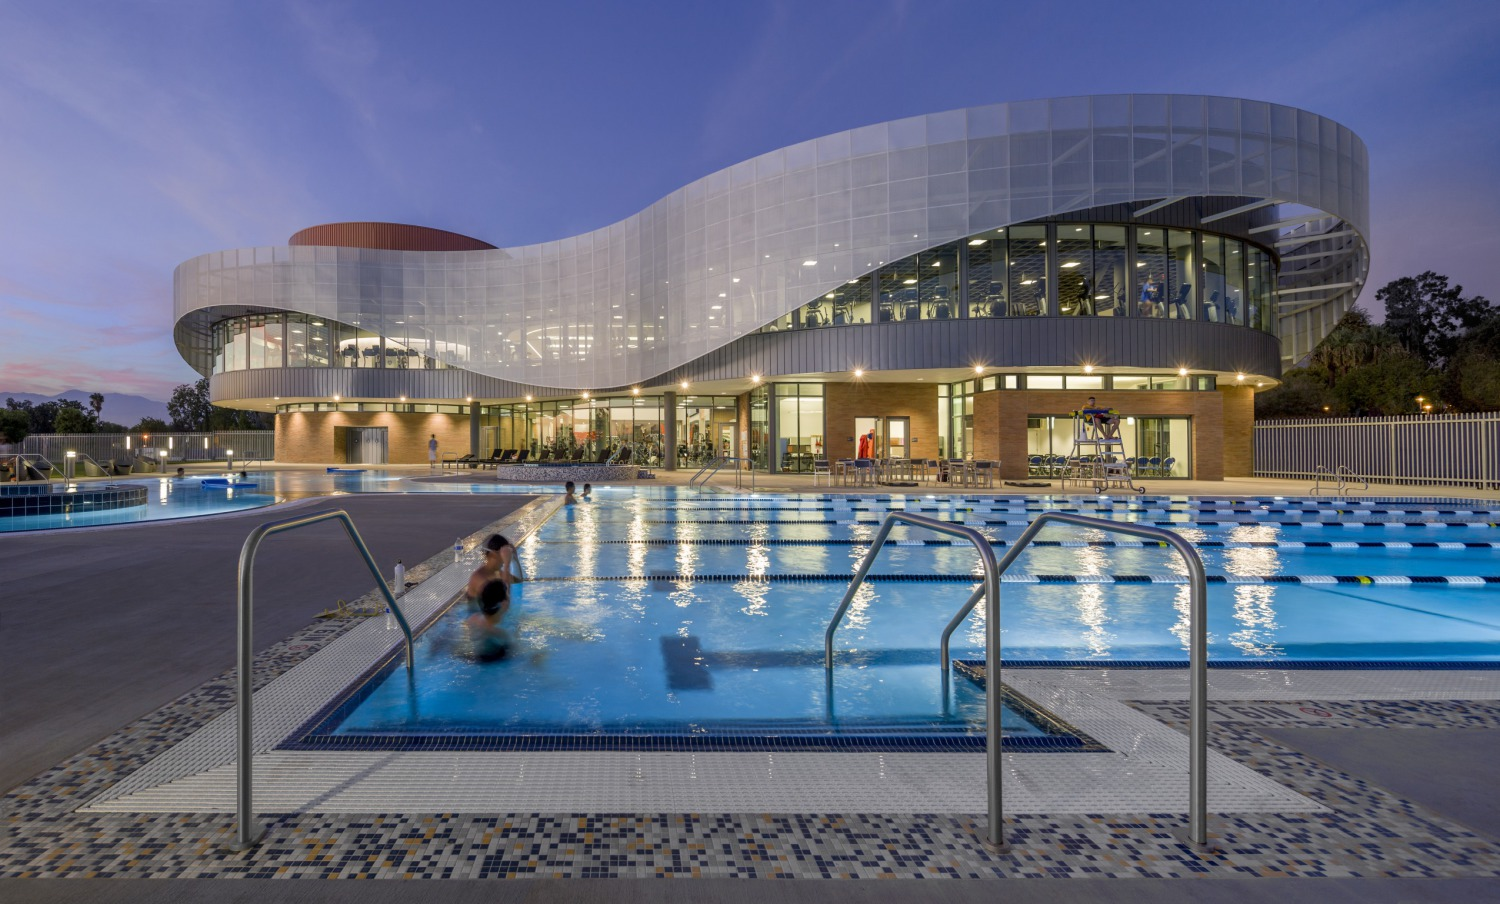 Talking The Future Of College Recreation With Lindy Fenex